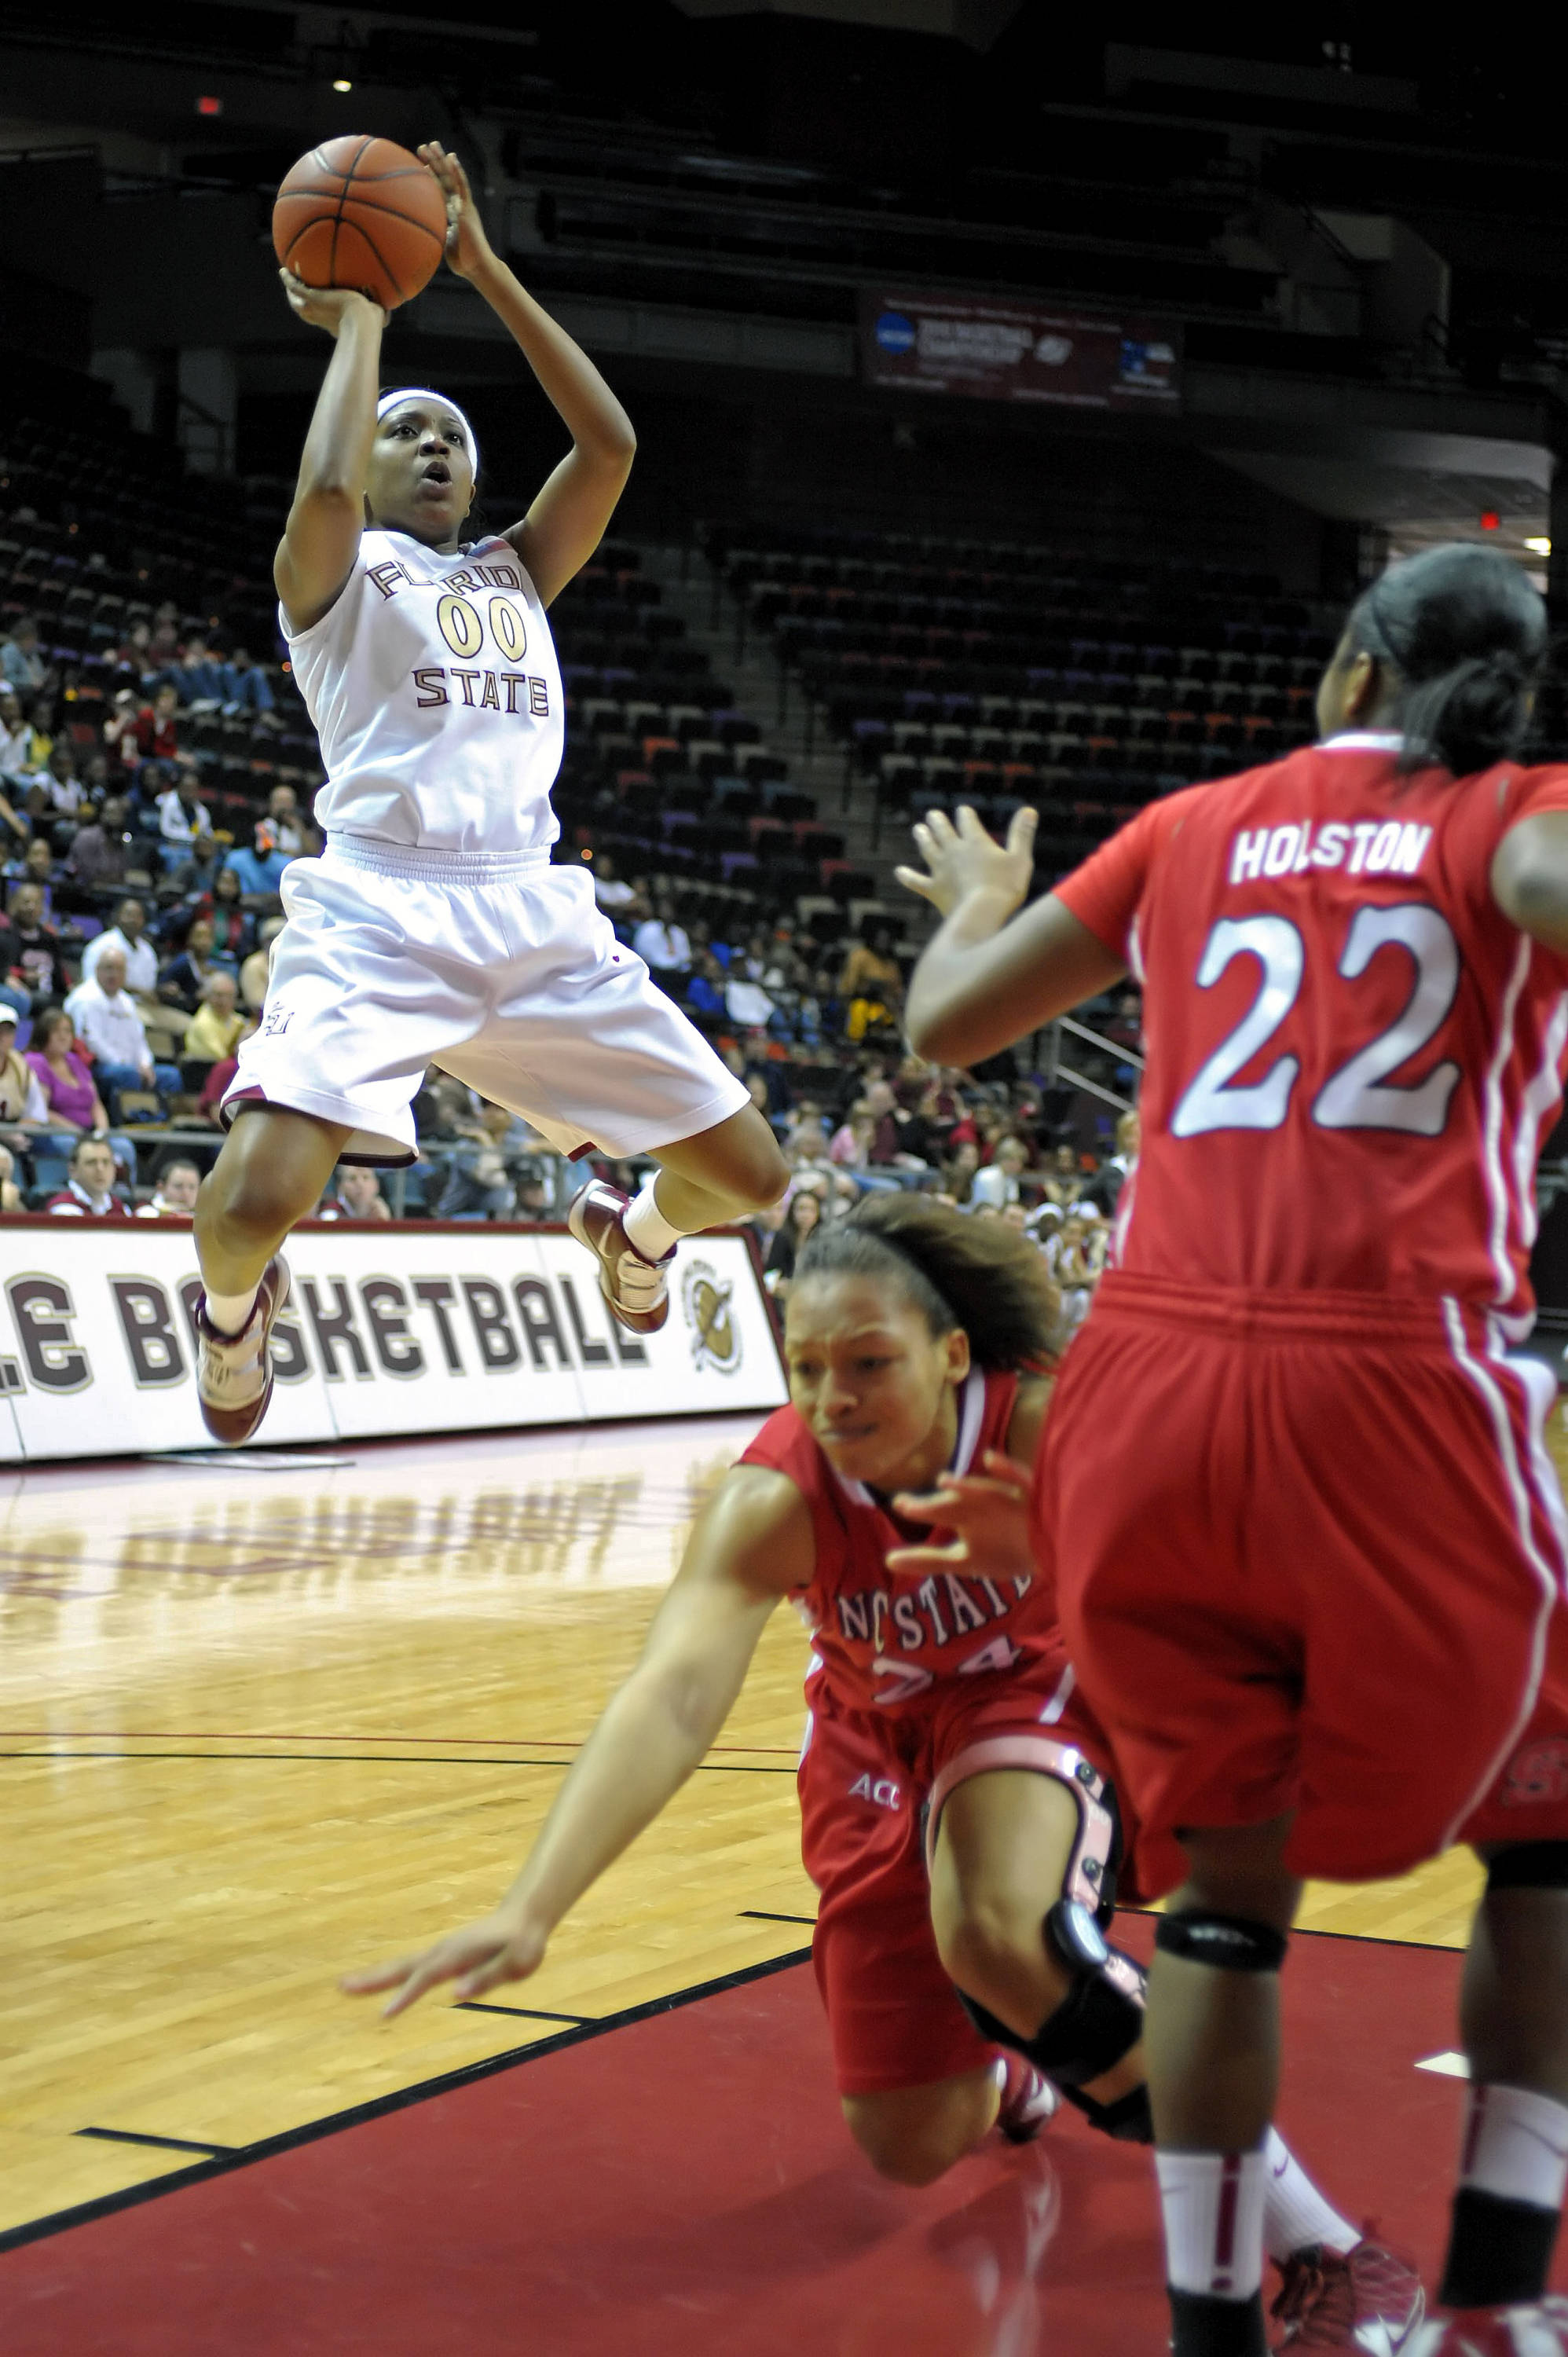 August 19 ... She's got hops! Chasity Clayton burst onto the scene as a freshman a year ago and you can certainly expect to see a whole lot more of this in 2010-11.